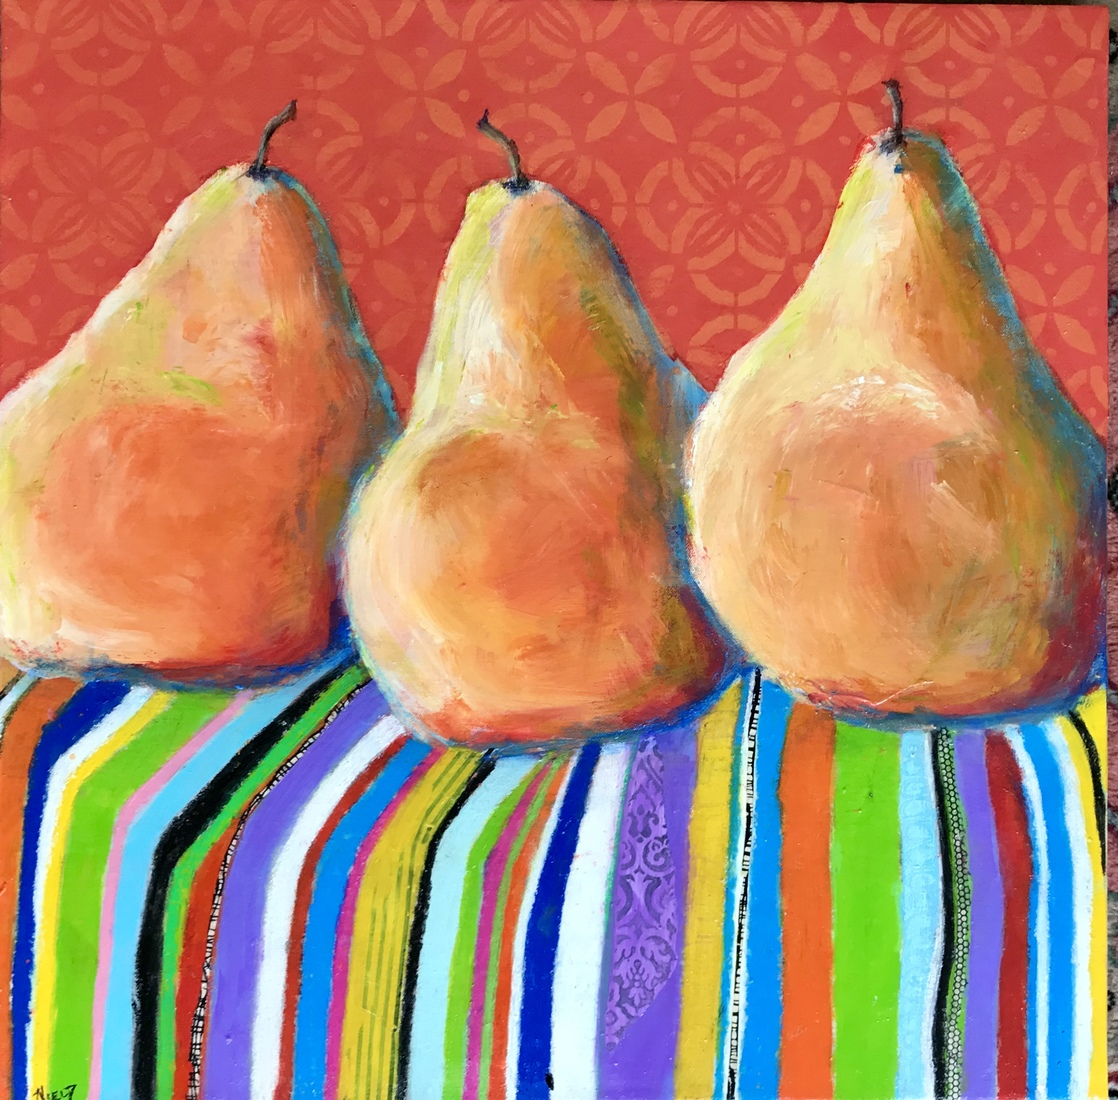 Paint & Palette Knife Pears on Stripes